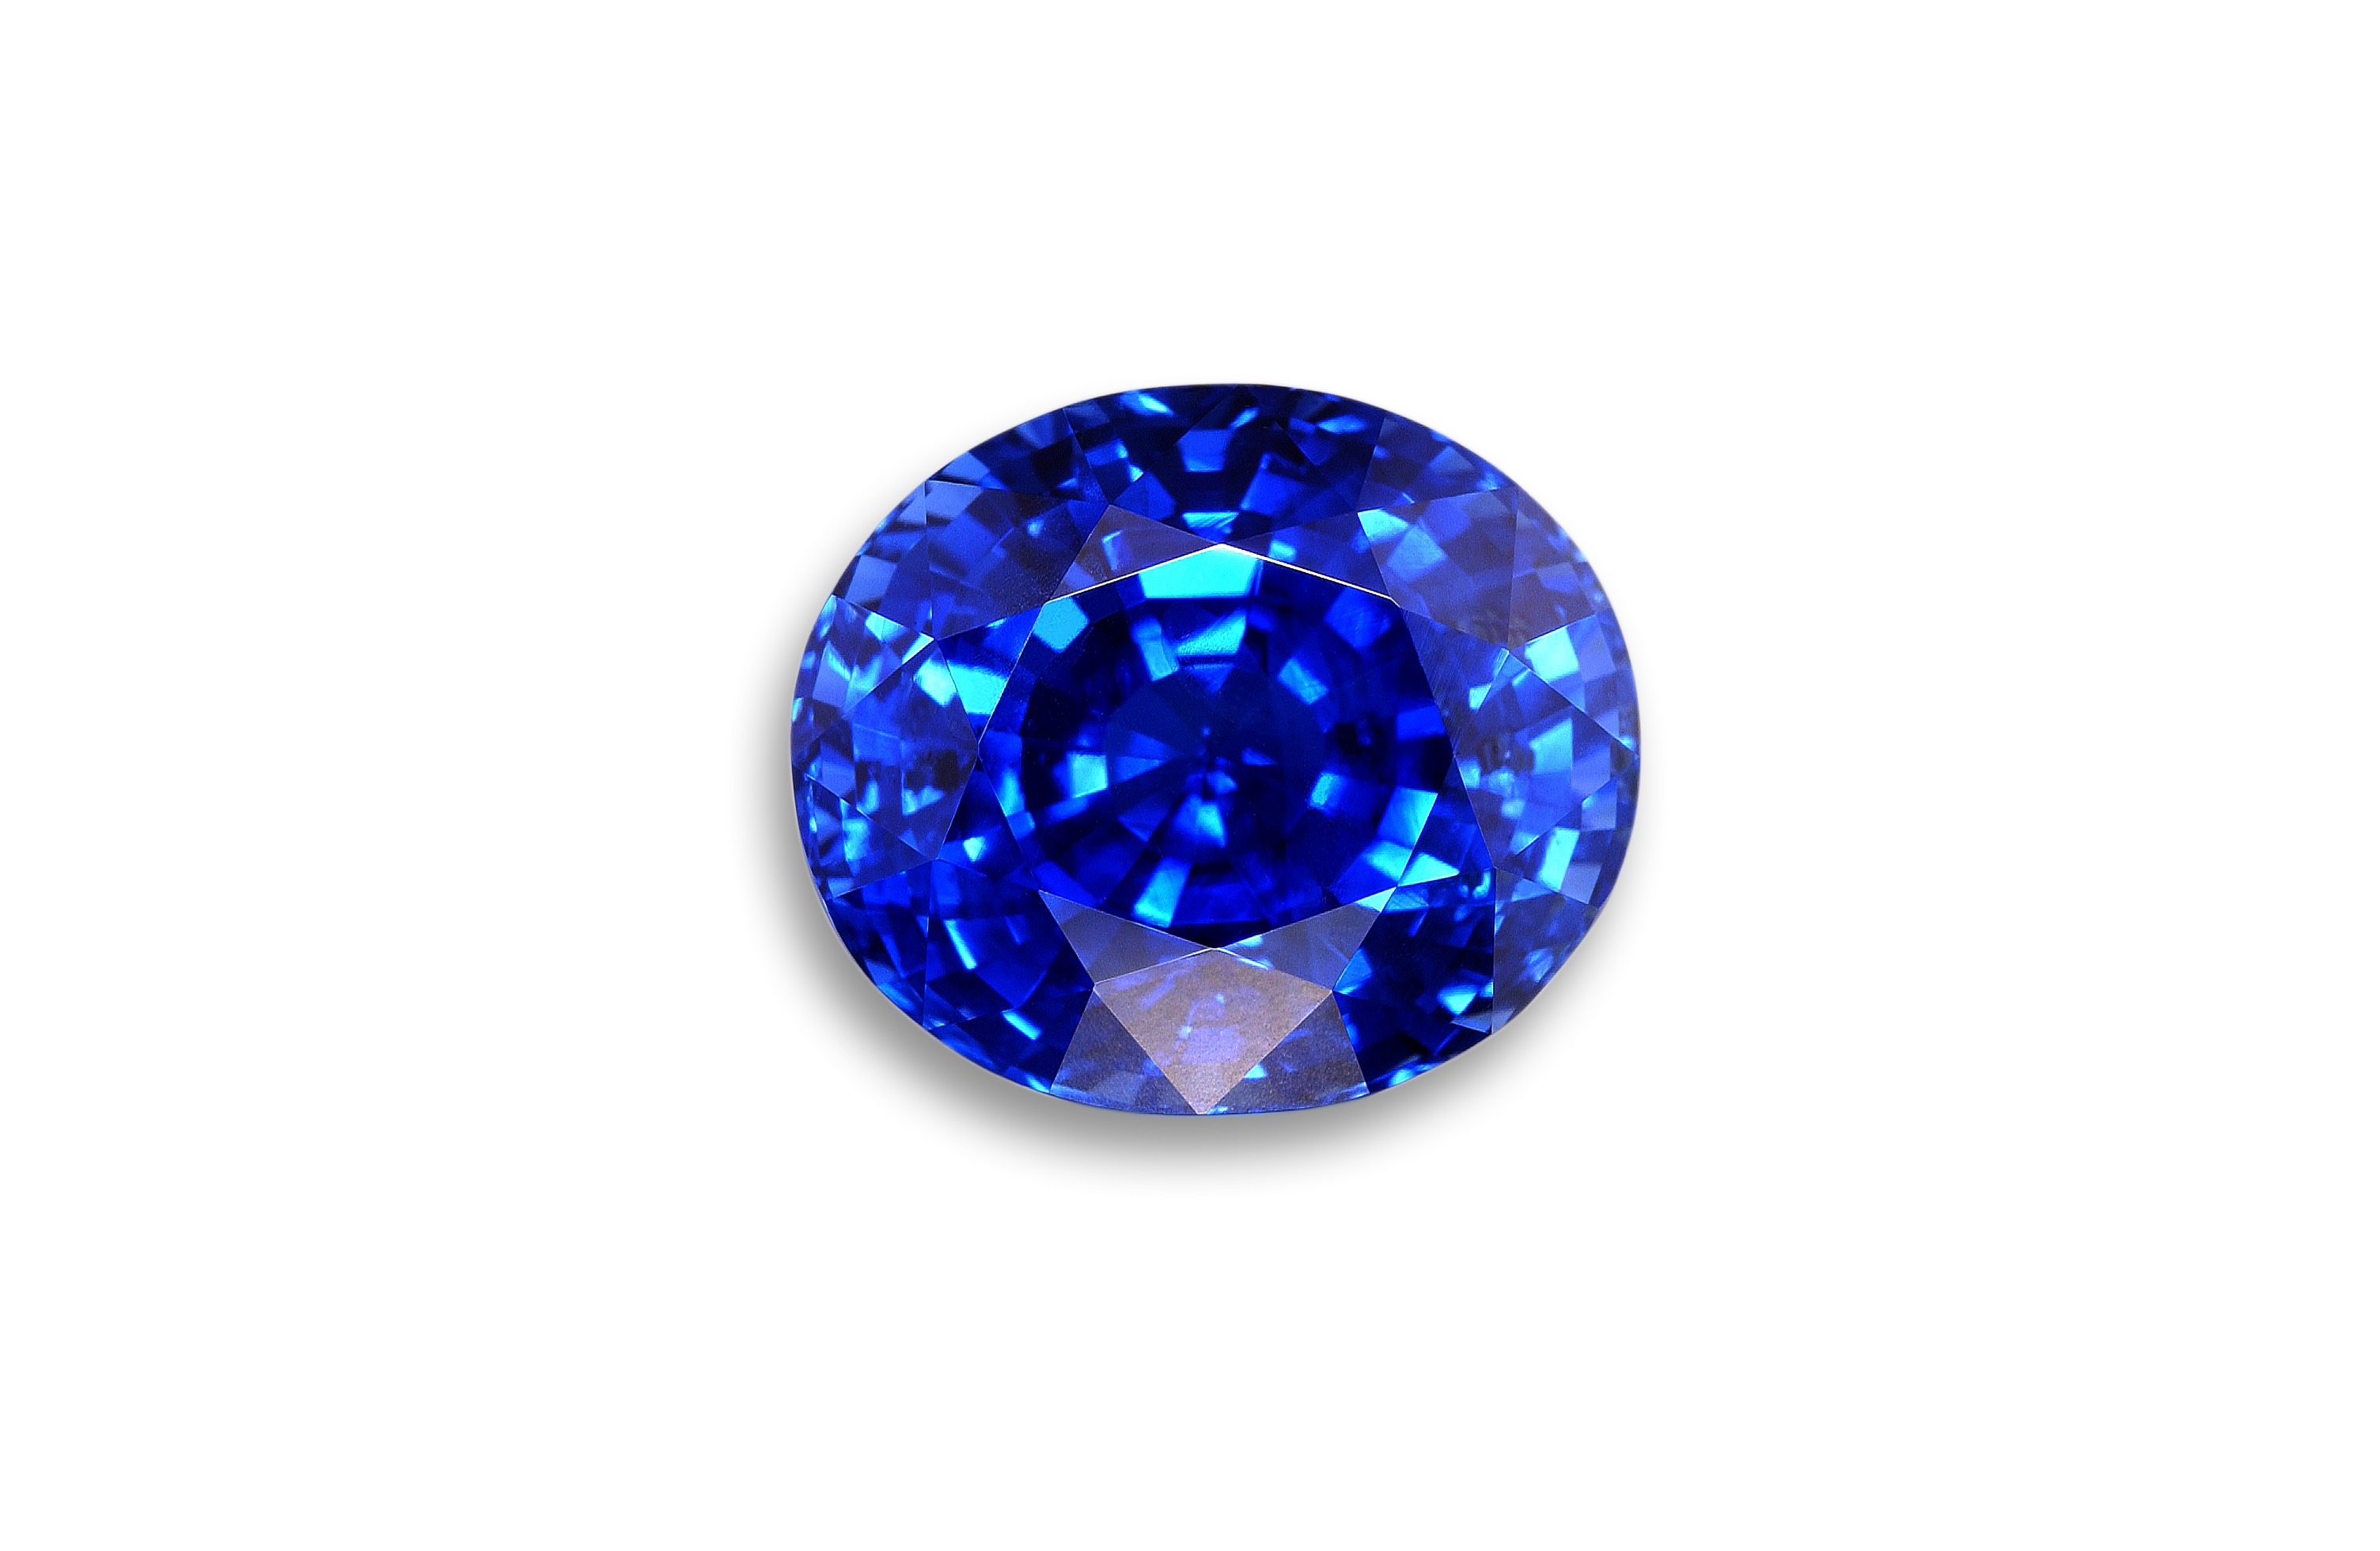 dsc sale jewelers pale sapphire sweet pendant collections blue june plante